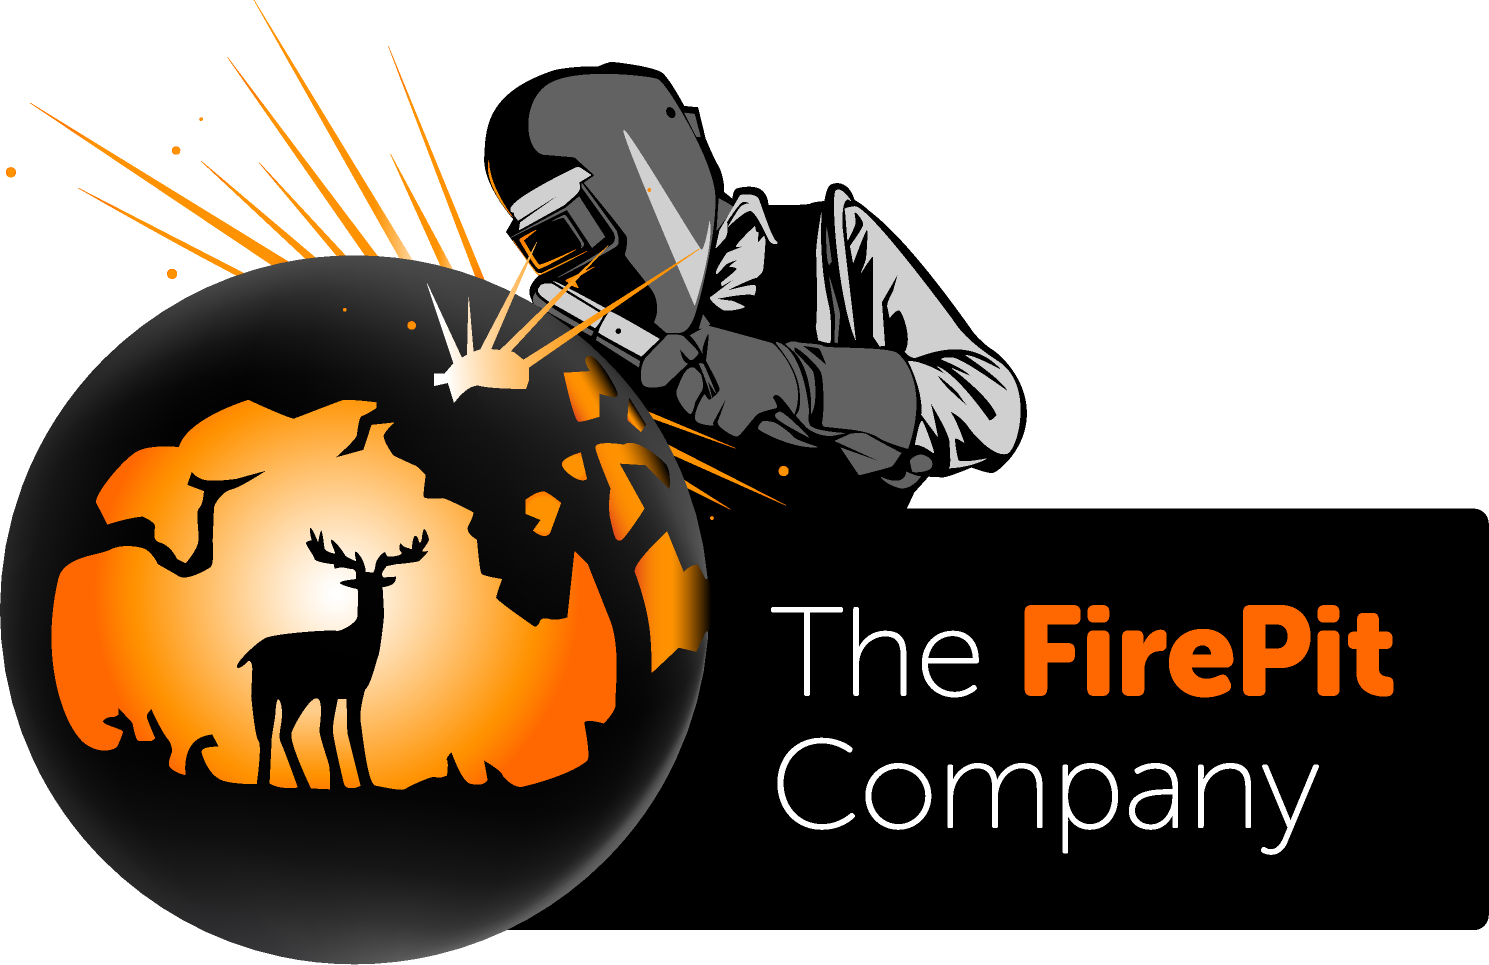 The Fire Pit Company logo